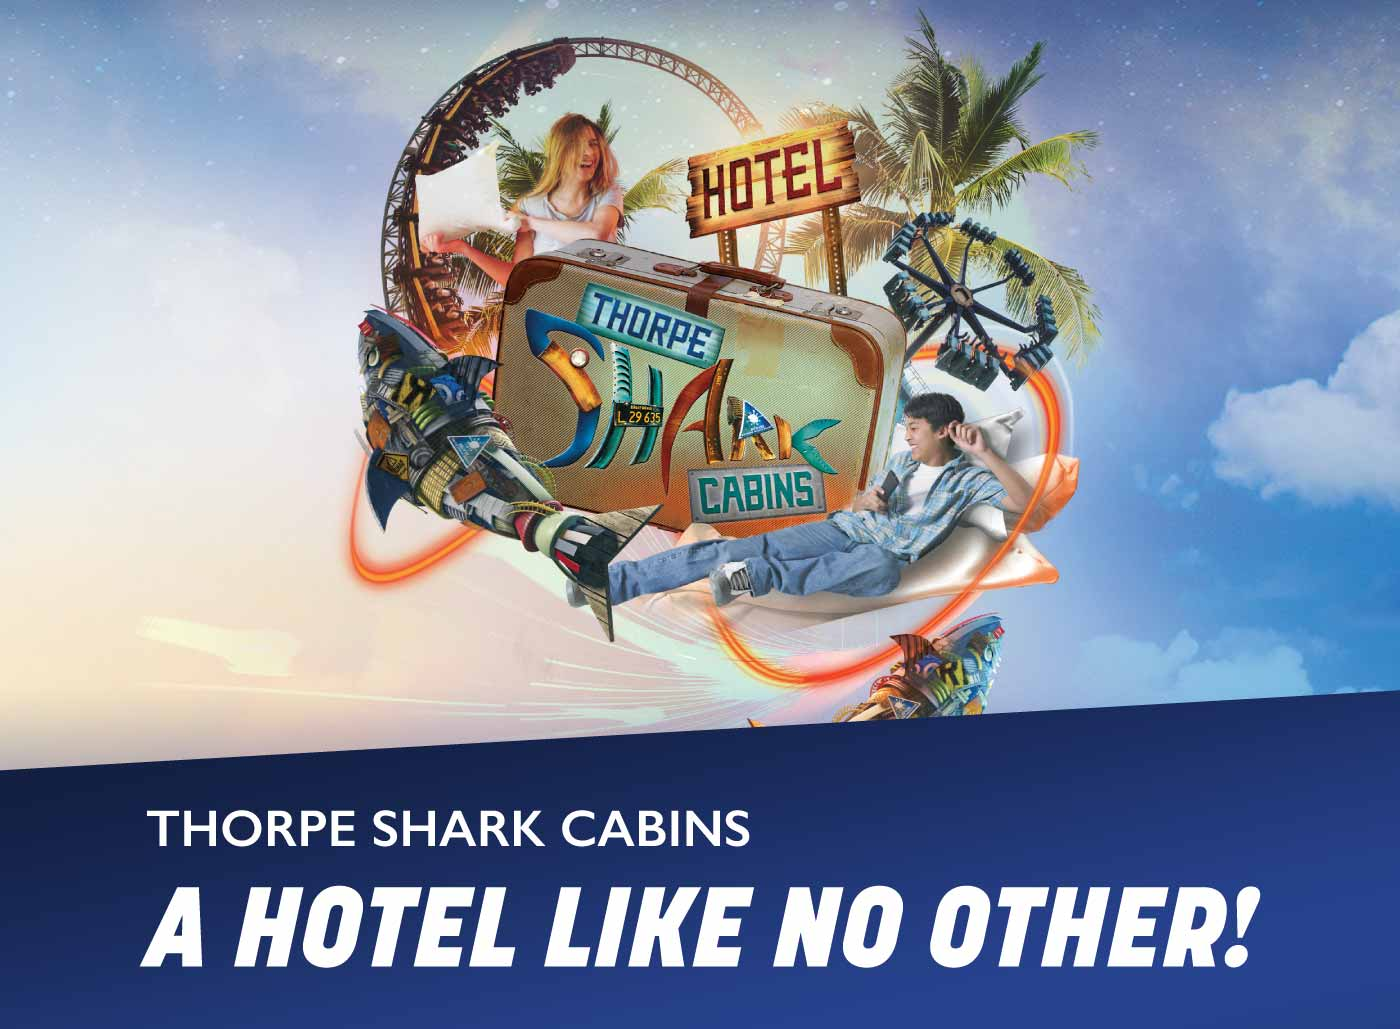 Thorpe Shark Cabins